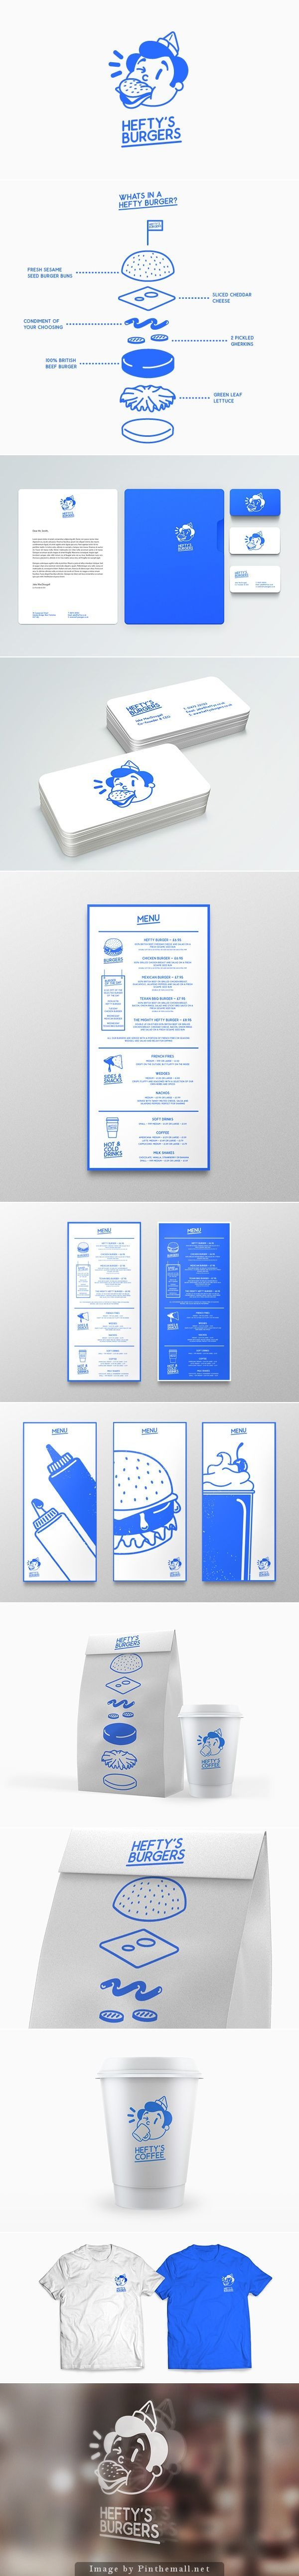 Heftys Burgers branding and identity designed by Jake MacDougall #infographics